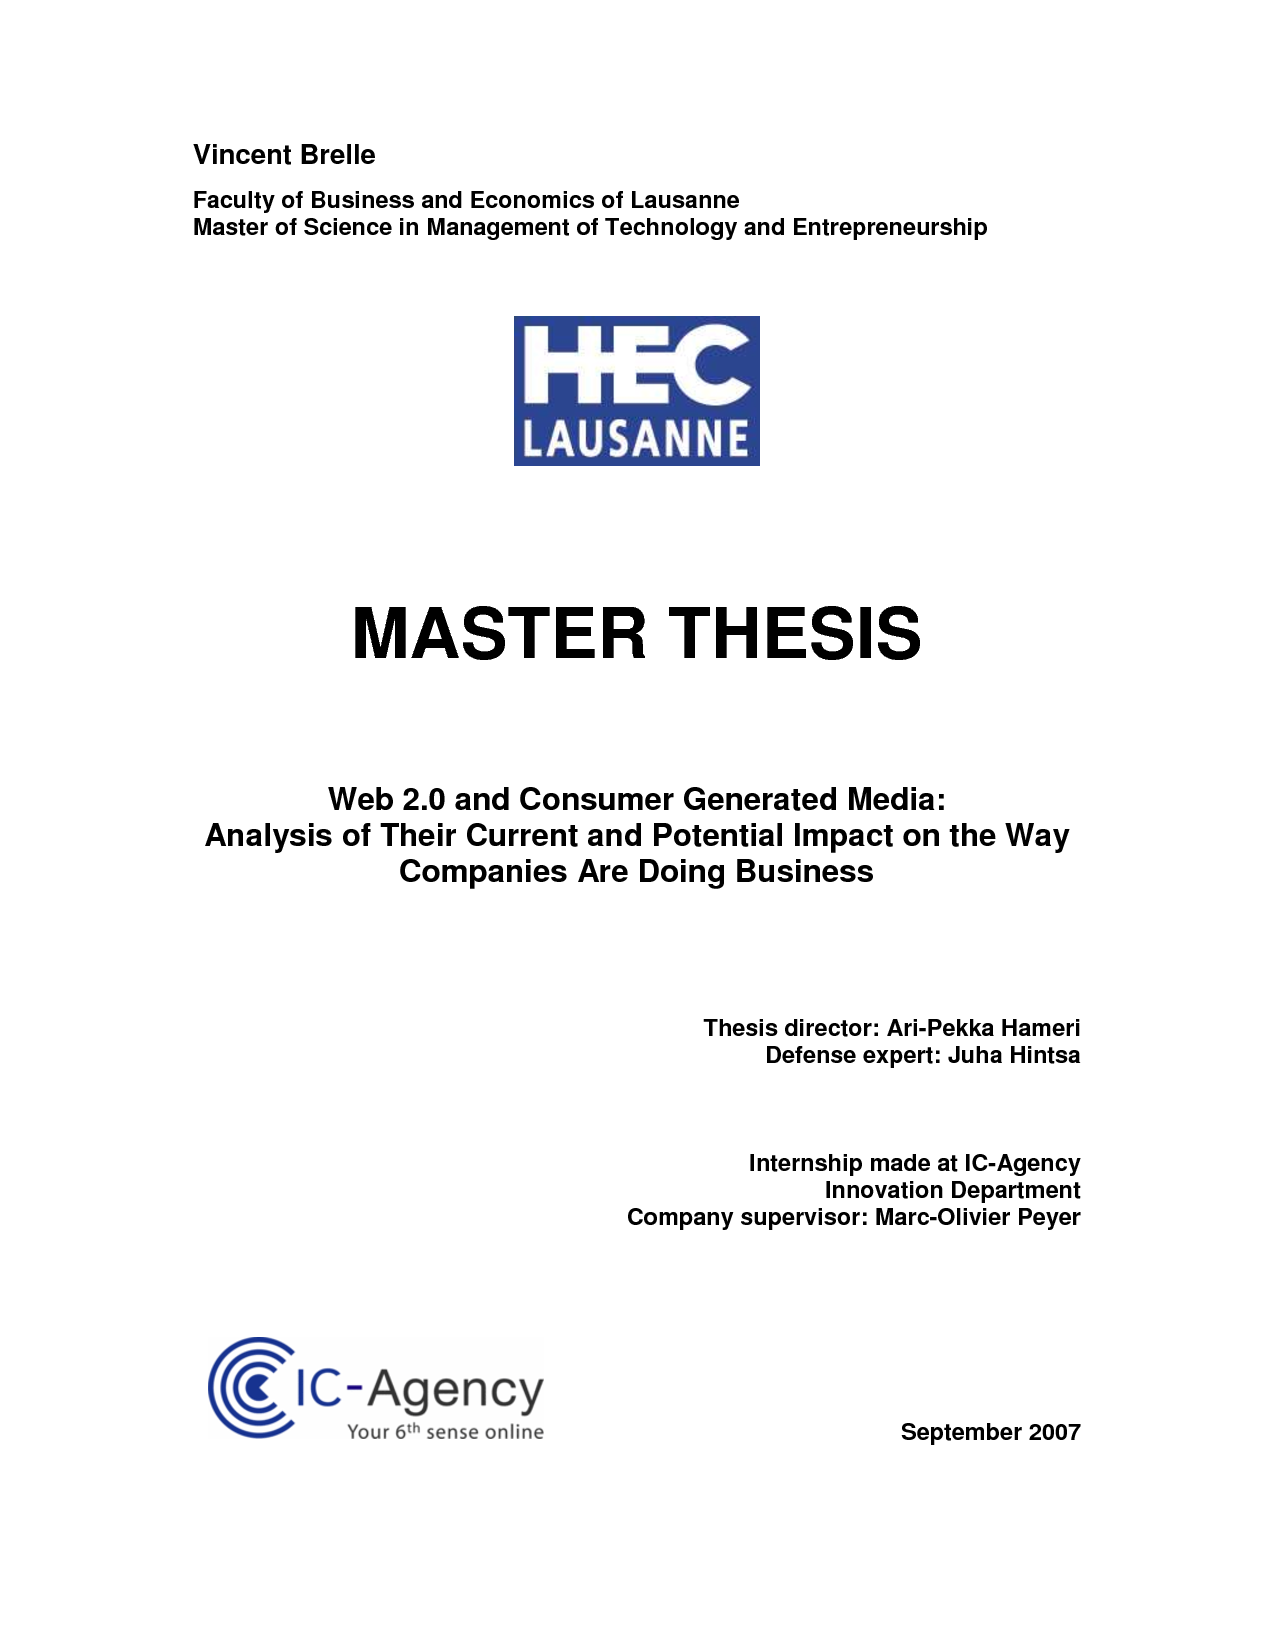 mit masters thesis Mit management thesis on mass finishing process selection.